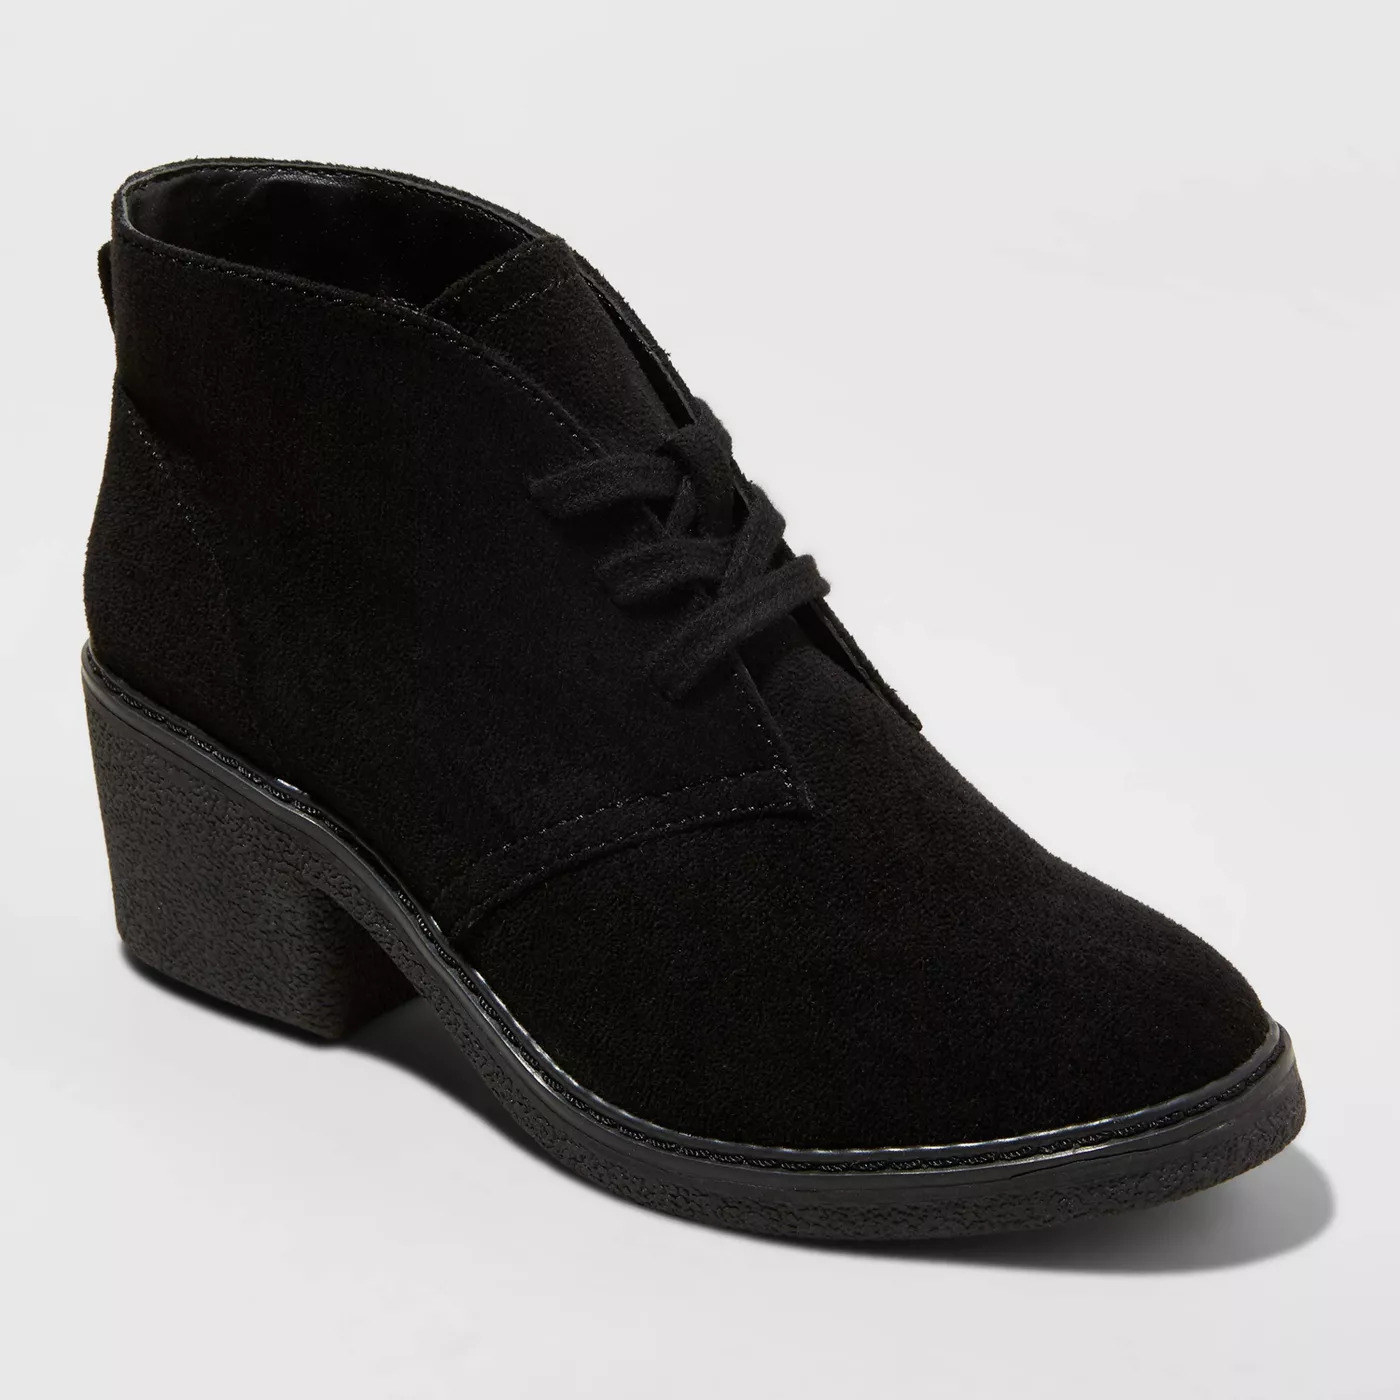 A faux suede black bootie with laces in the front, a low block heel, and a crepe sole